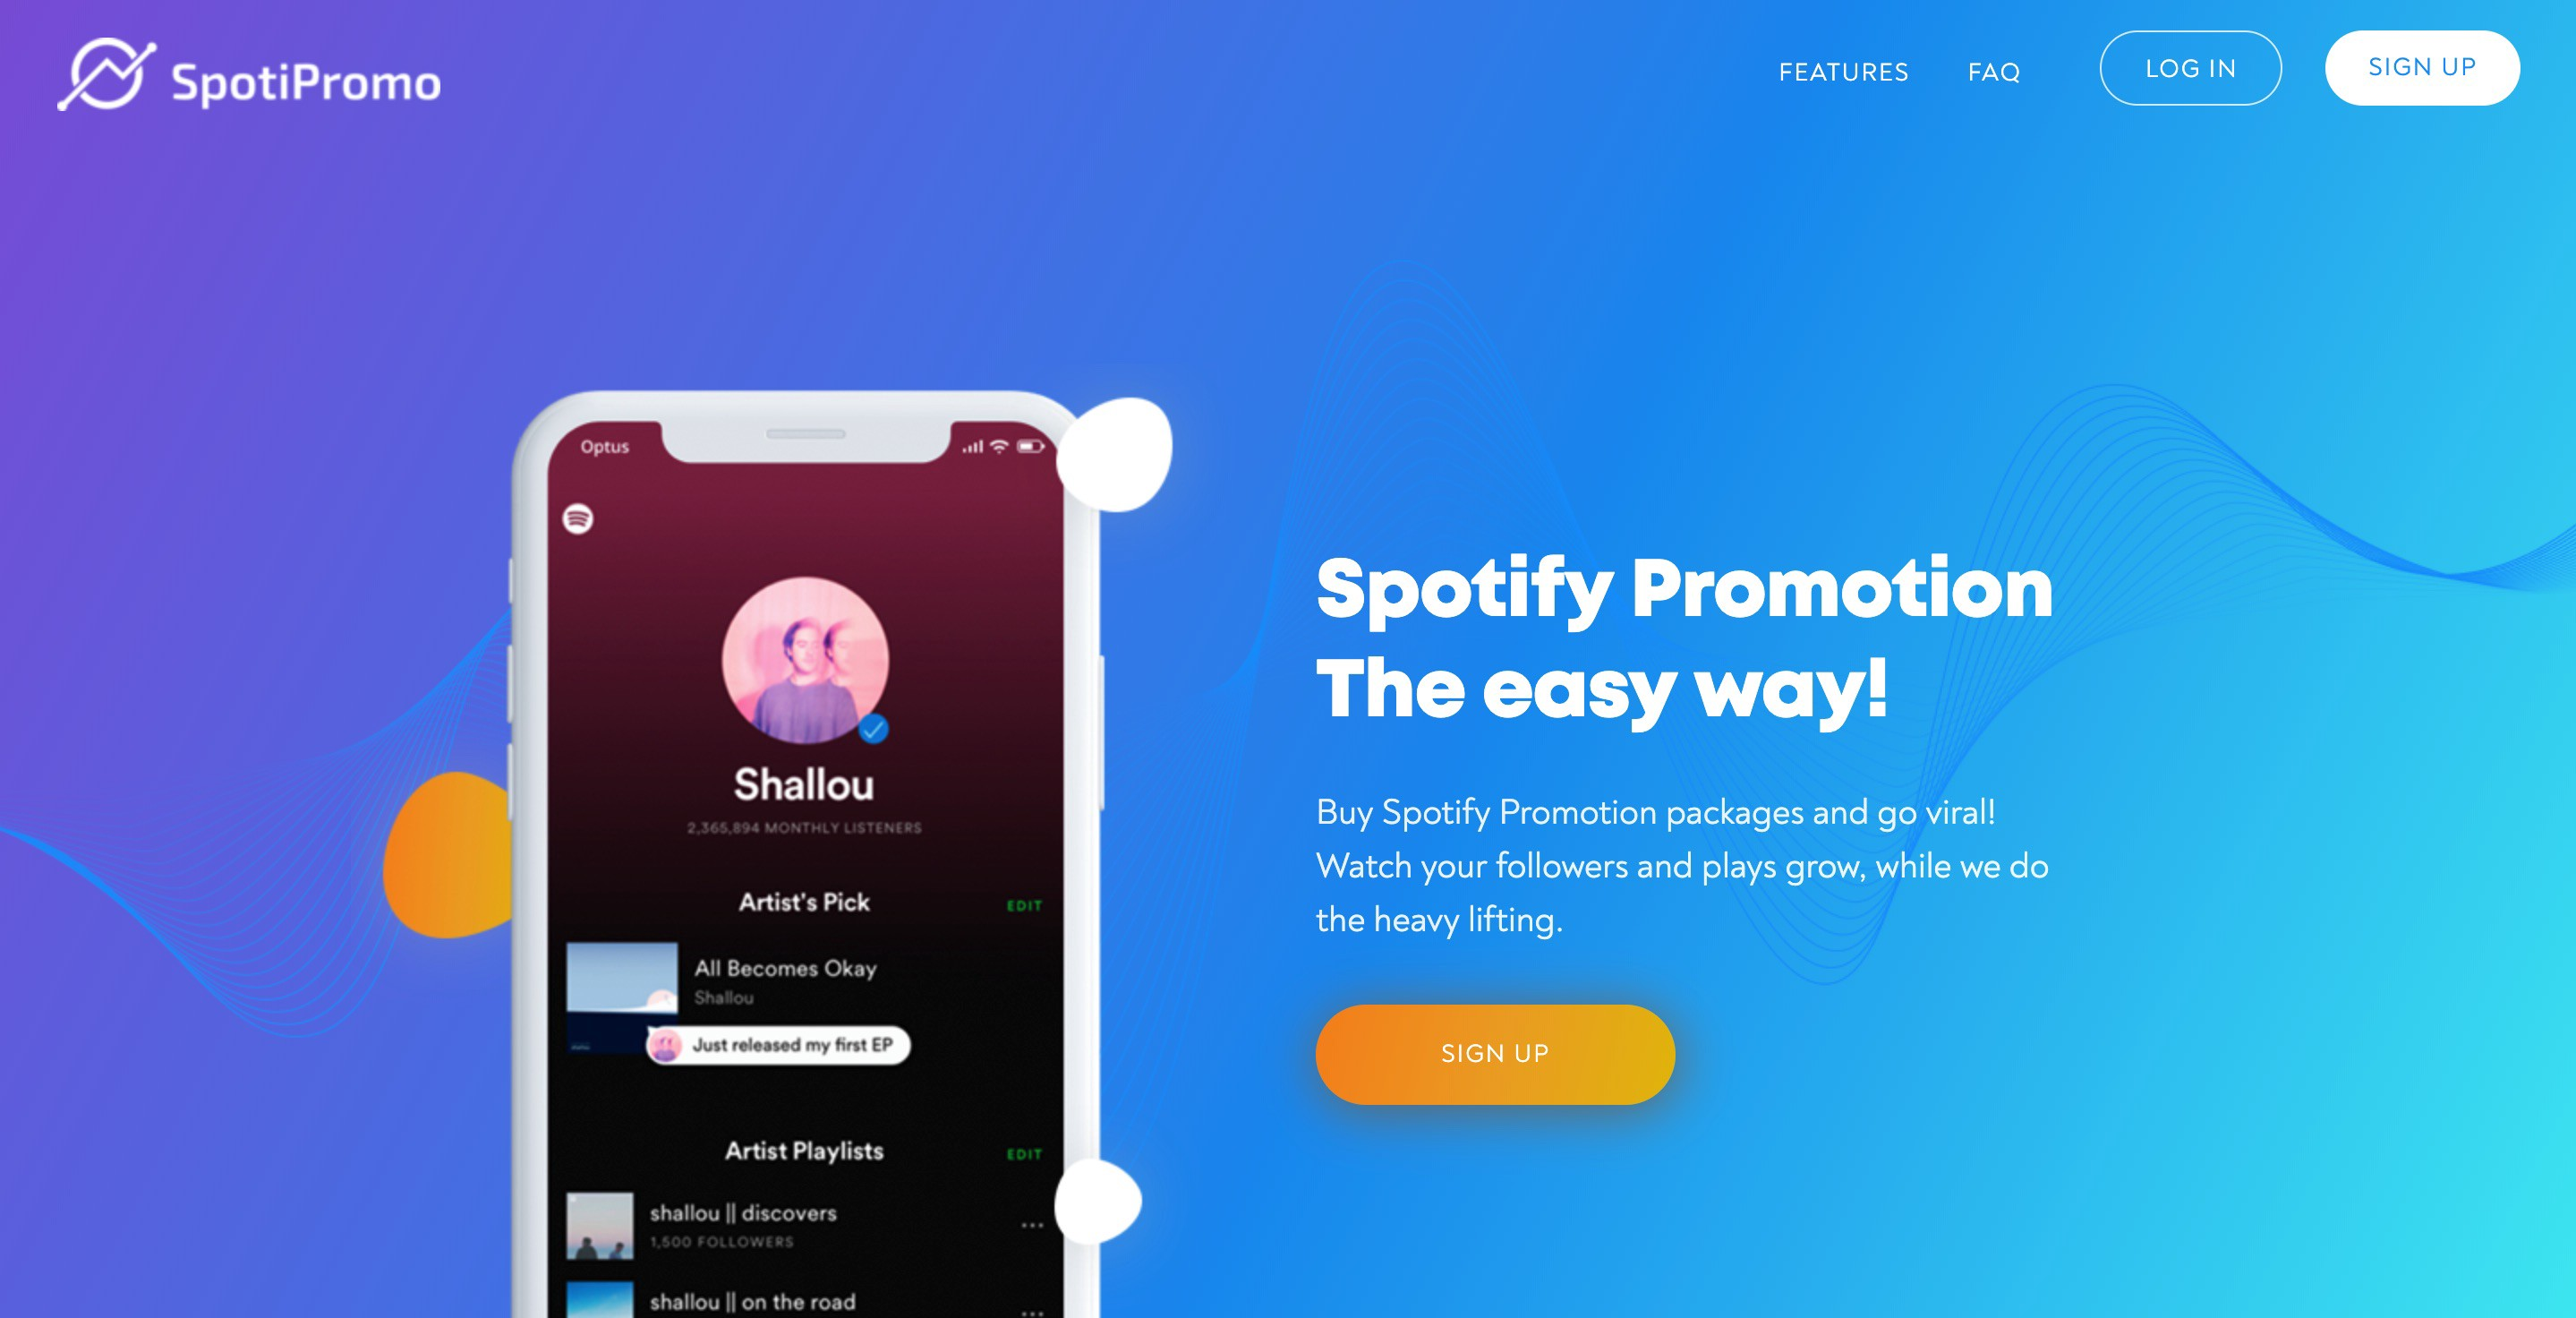 Start your spotify promotion campaign on https://spotipromo.com